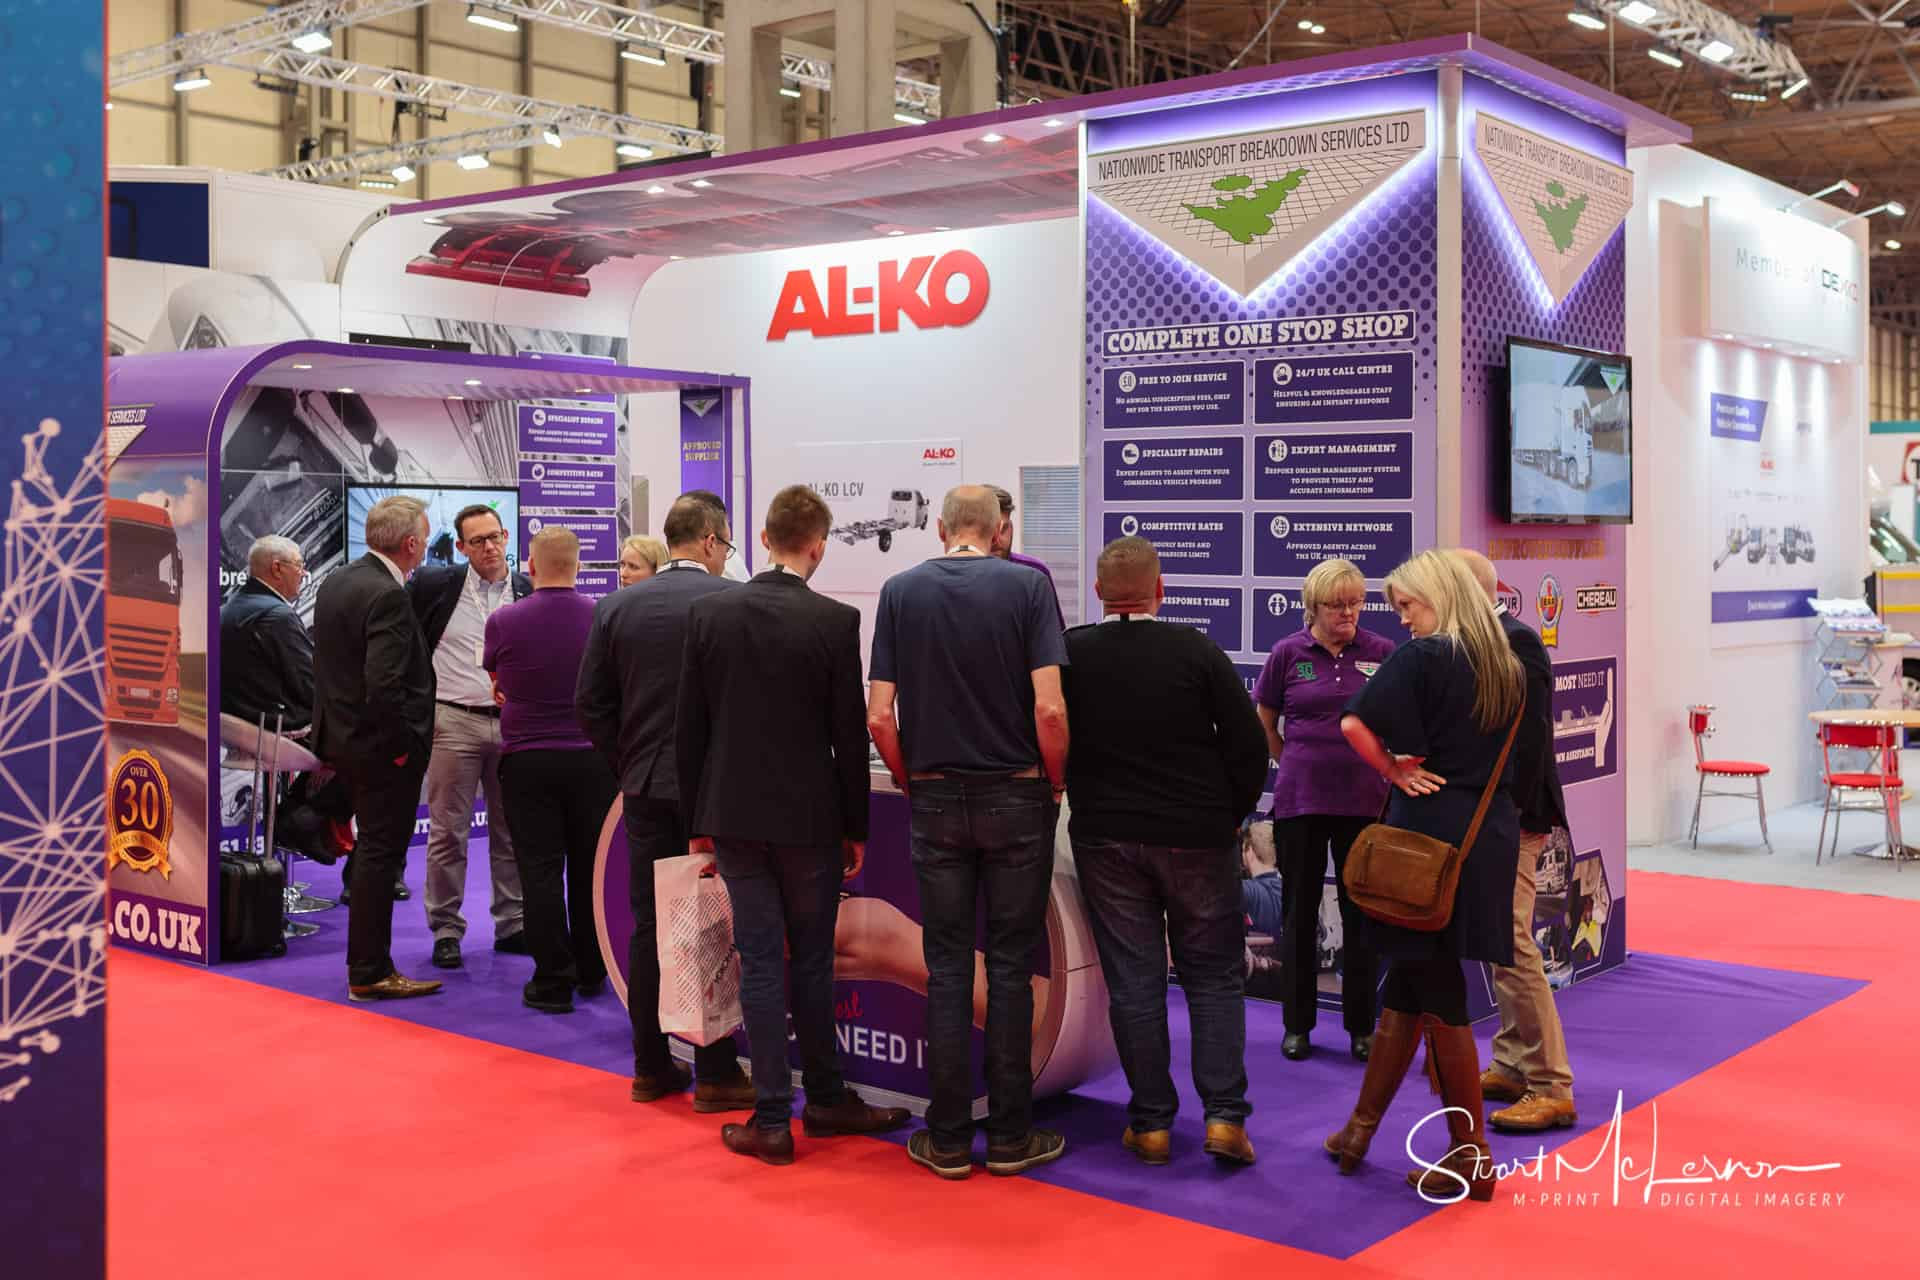 CV Show 2019 Event Photography by Stuart McLernon | M-PRINT Digital Imagery